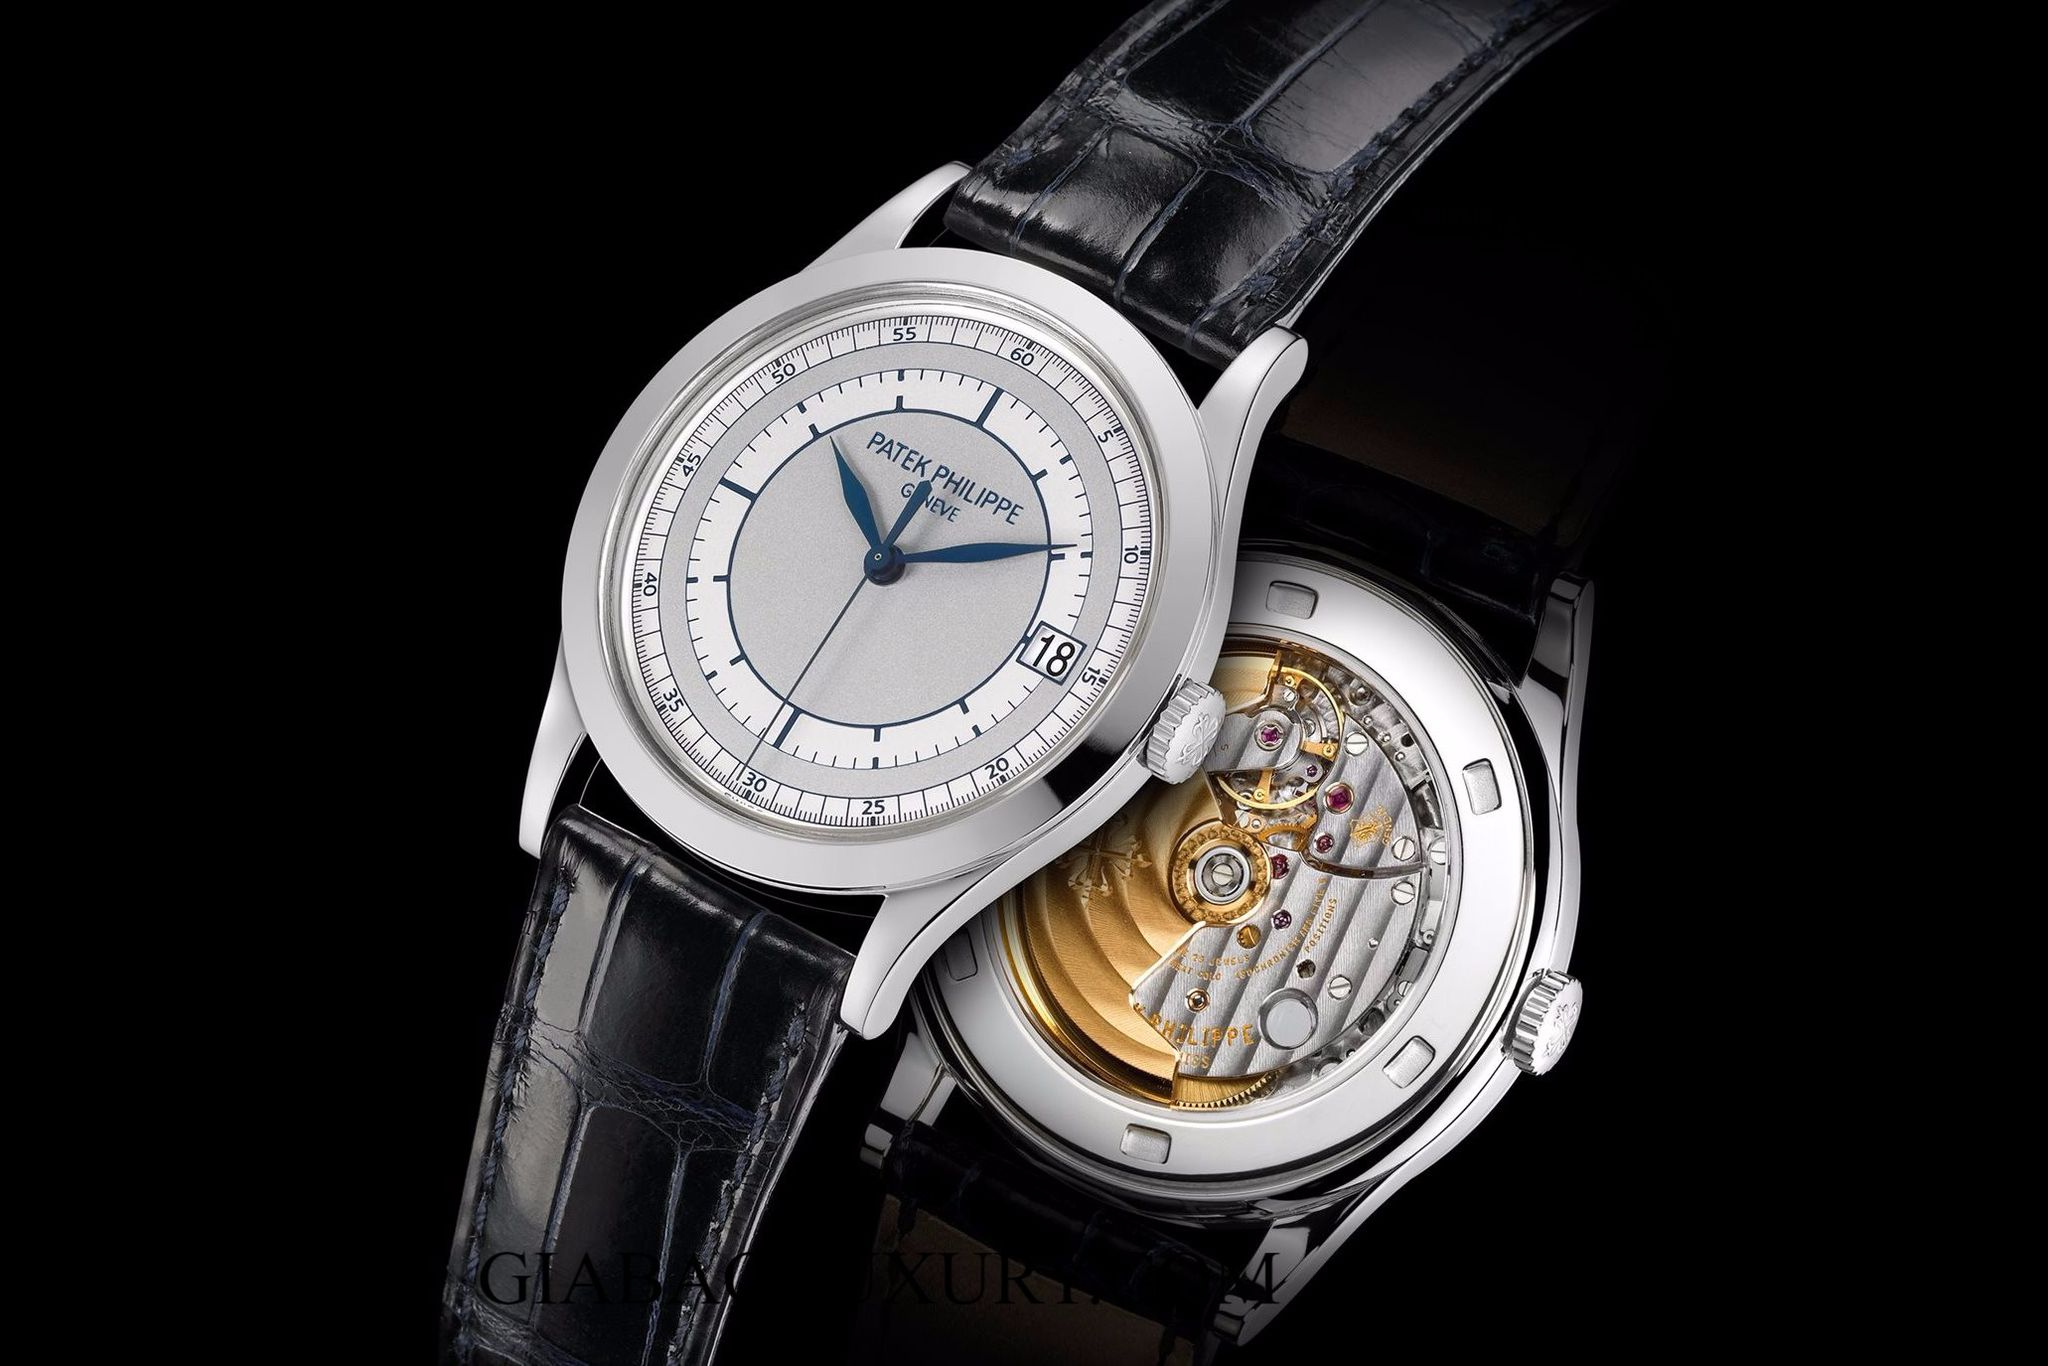 ĐỒNG HỒ PATEK PHILIPPER CALATRAVA 5296G DATE, SWEEP SECONDS